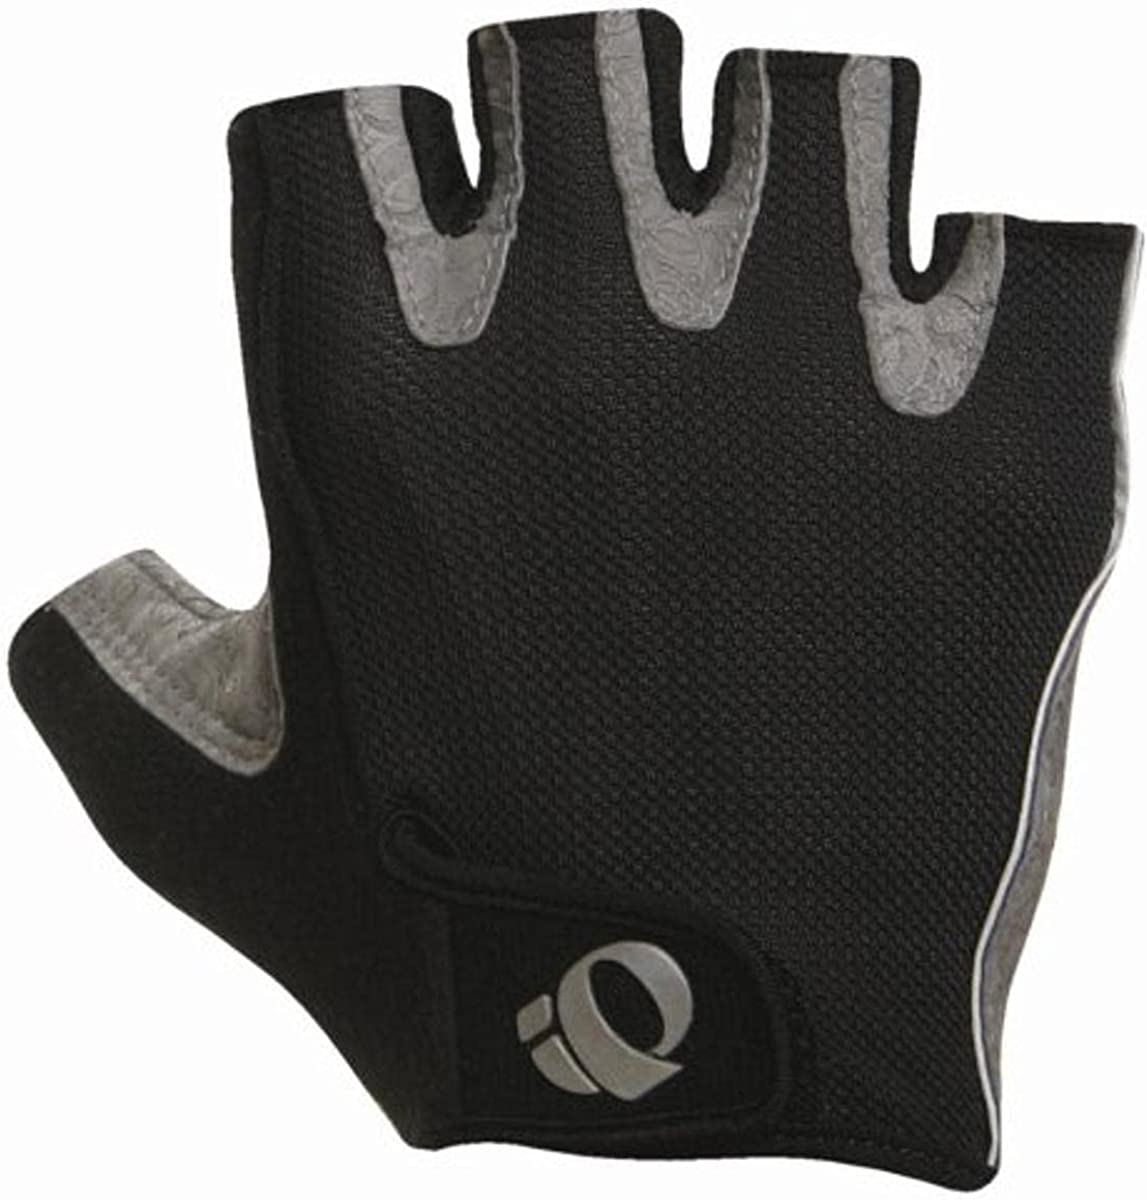 PEARL IZUMI Men's Octane Pittard's Black High quality new Cycling Industry No. 1 Glove Small